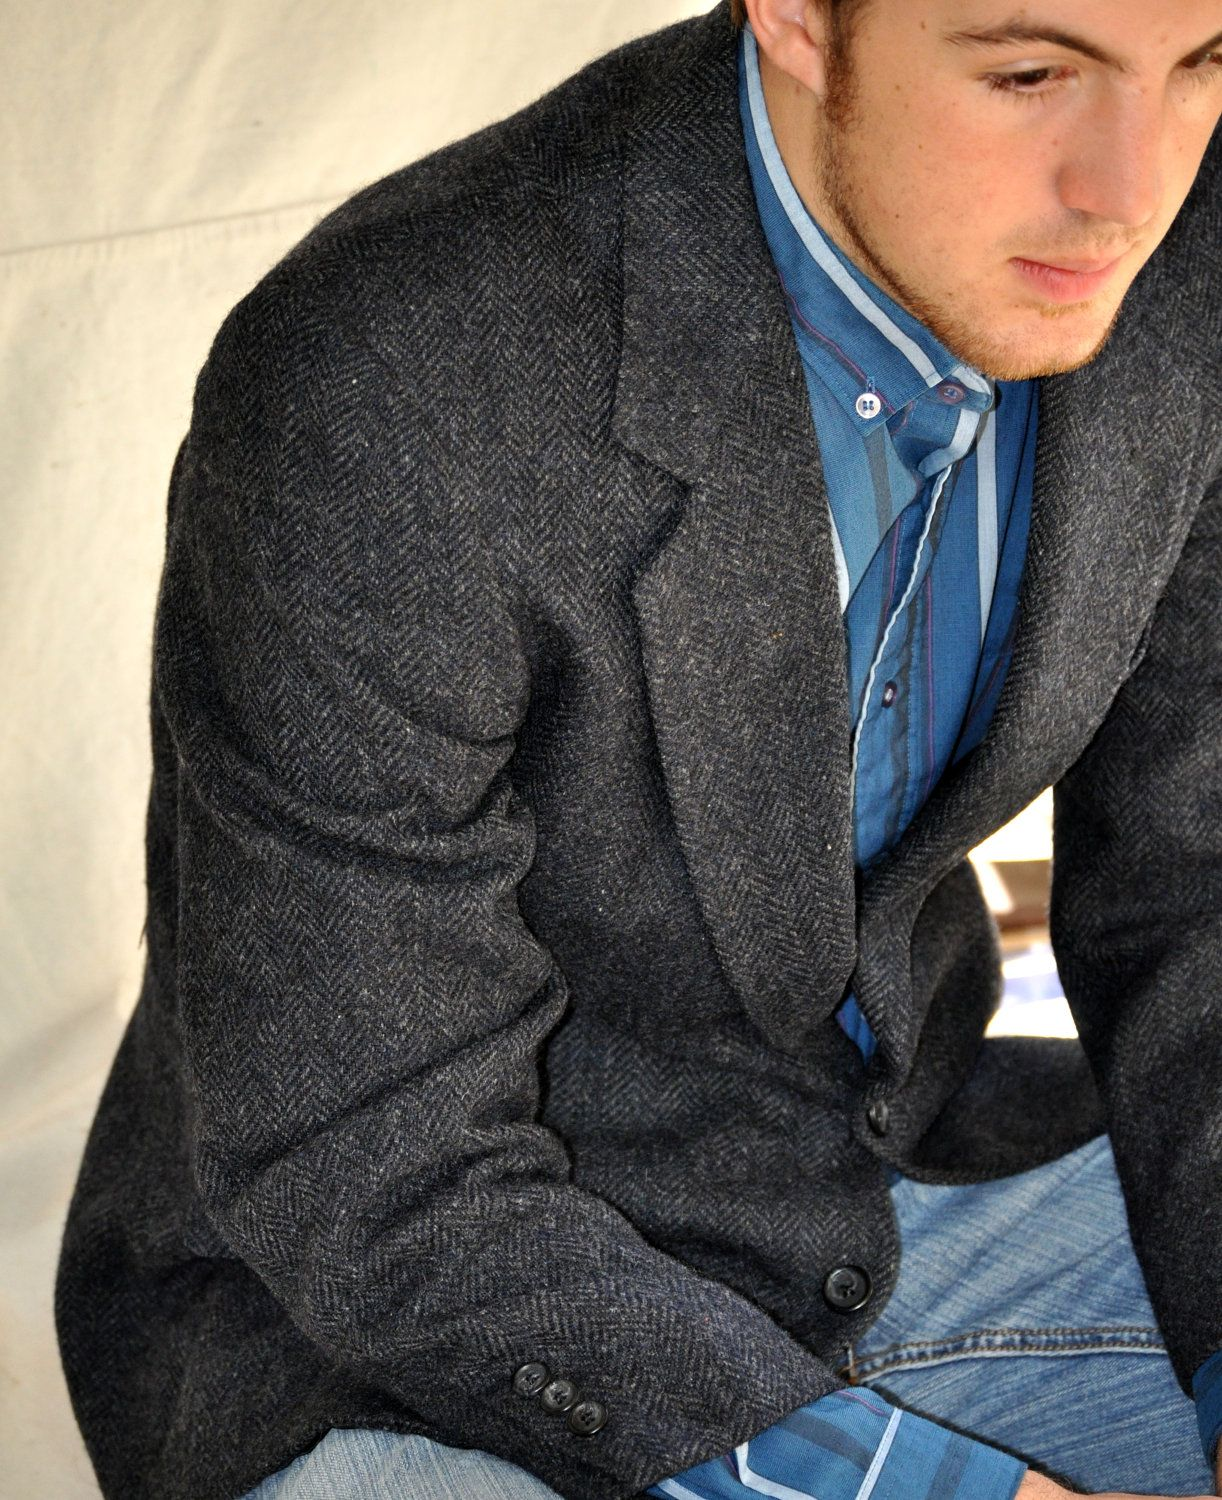 Navy Tweed Blazer with jeans | Great Looks - Men's Fashion ...